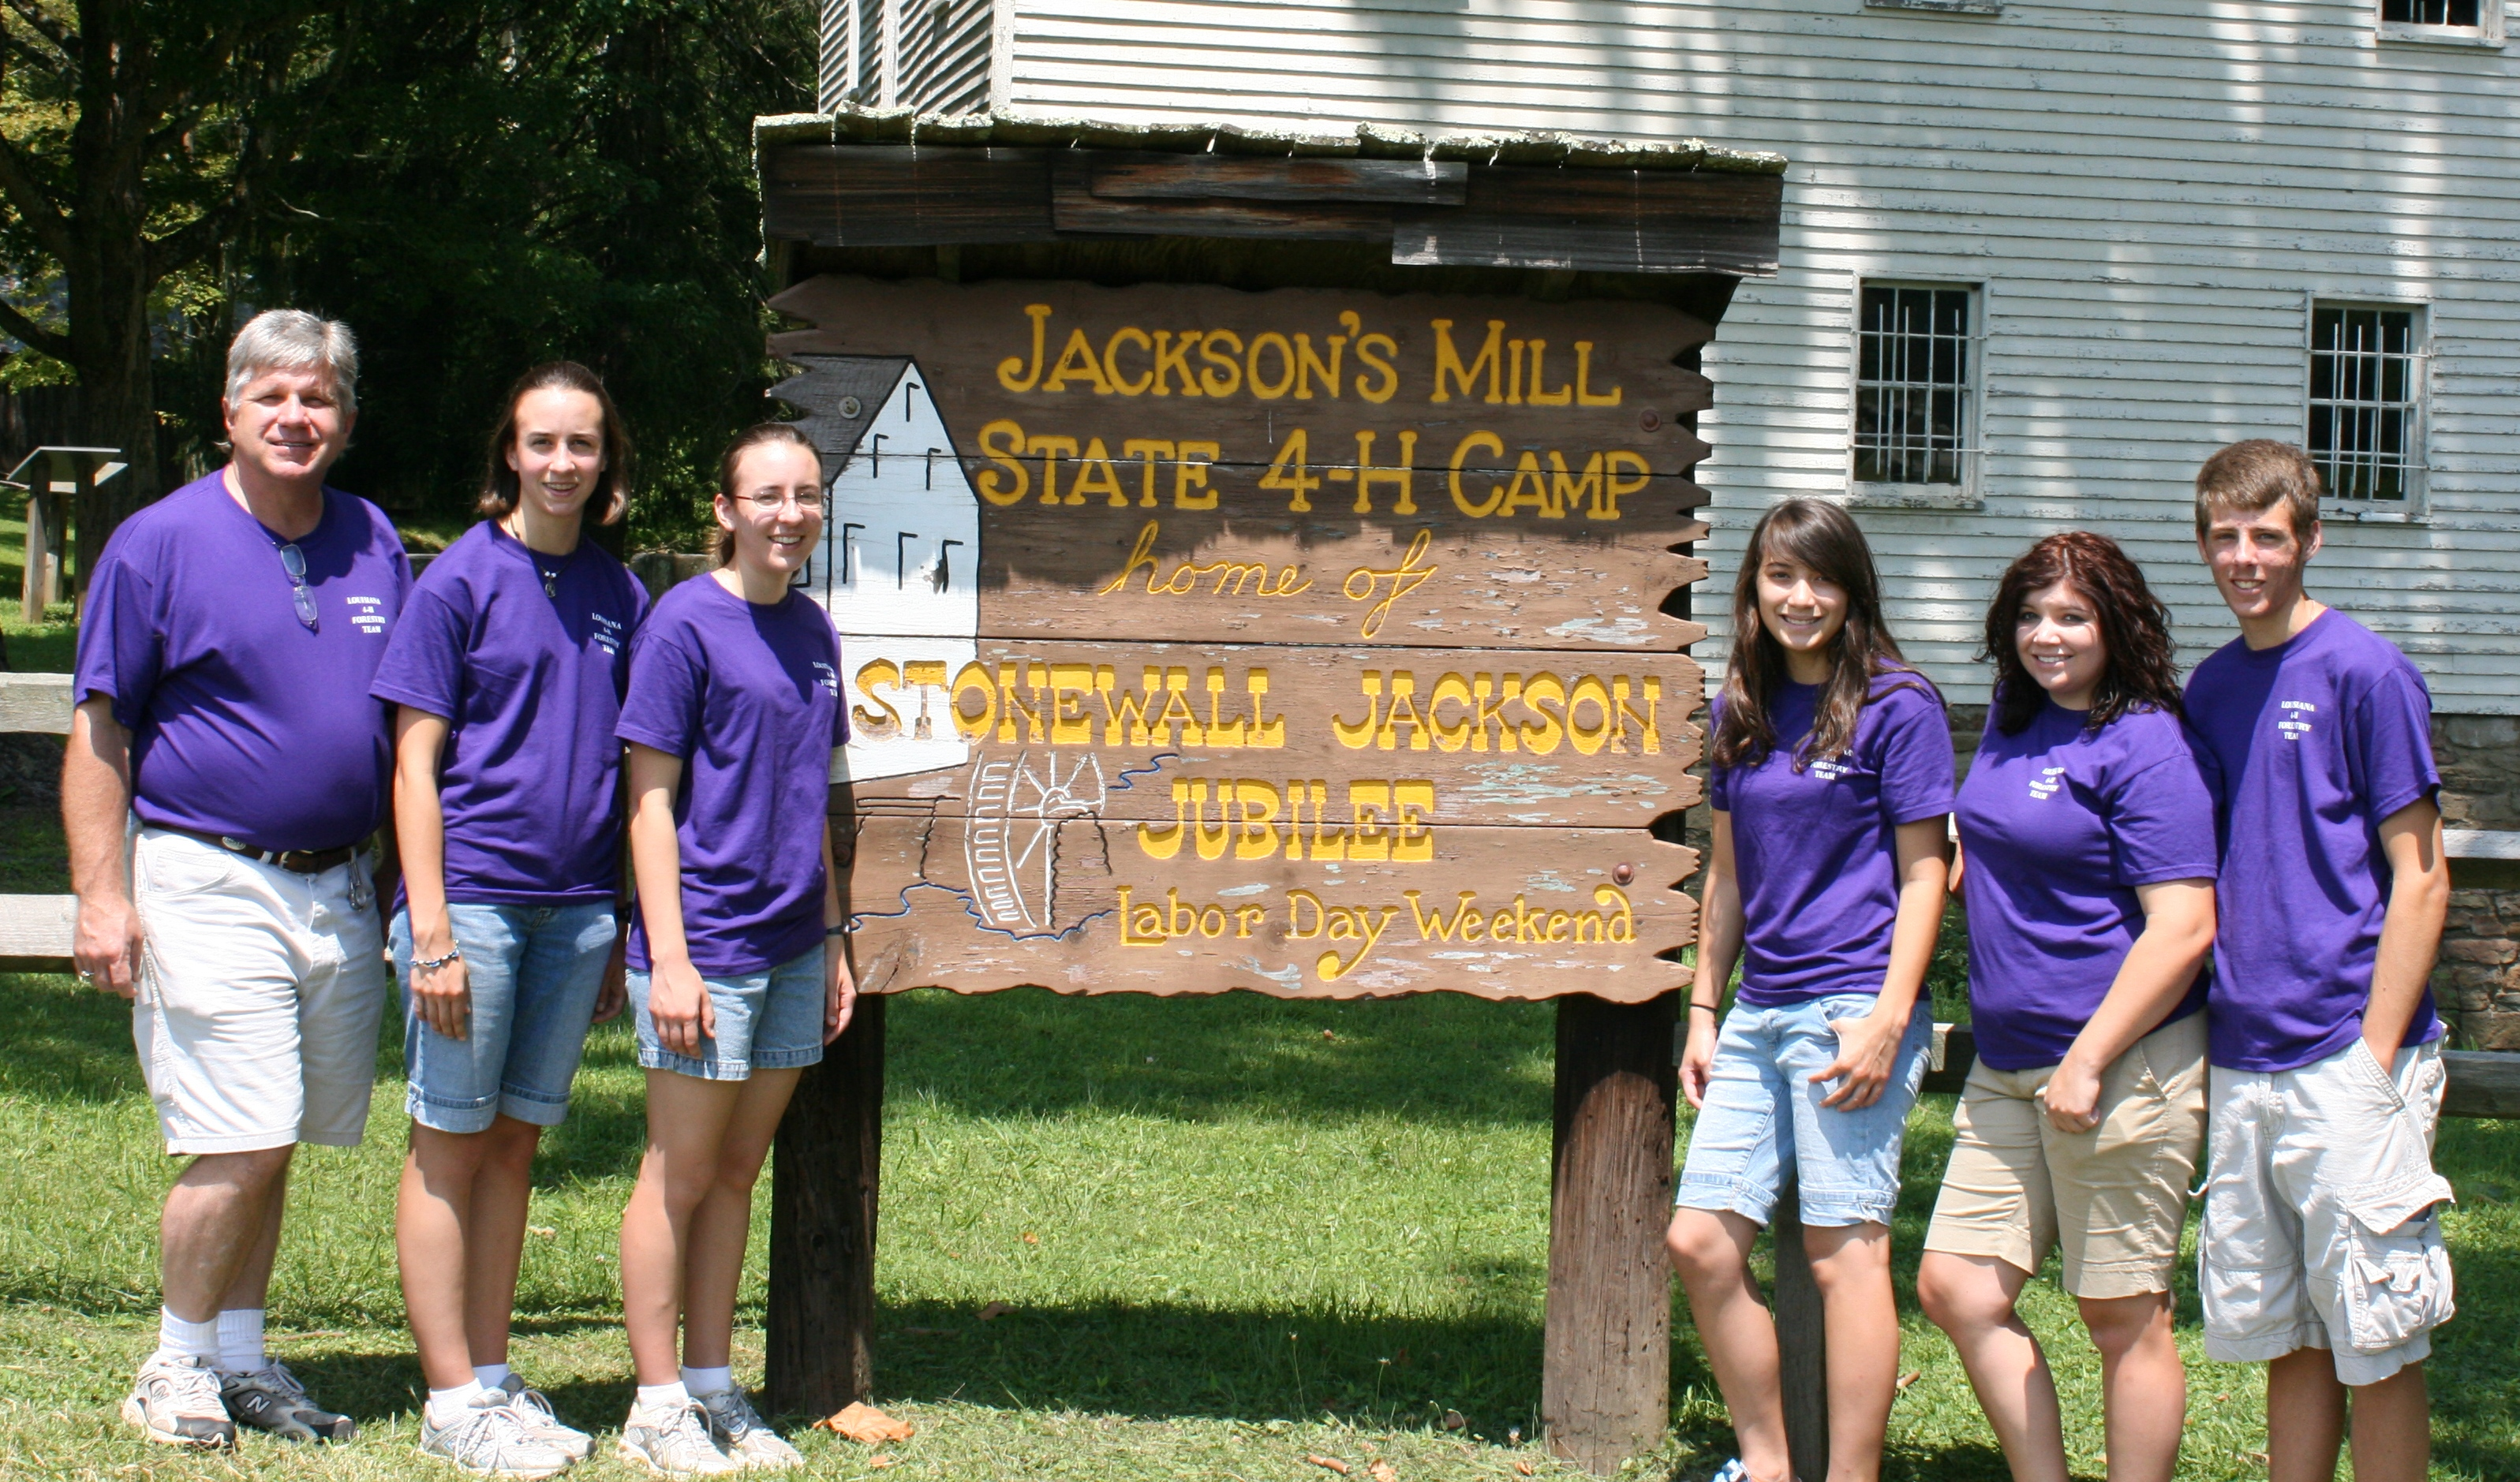 Louisiana 4-H'ers earn 3rd place in national 4-H forestry contest